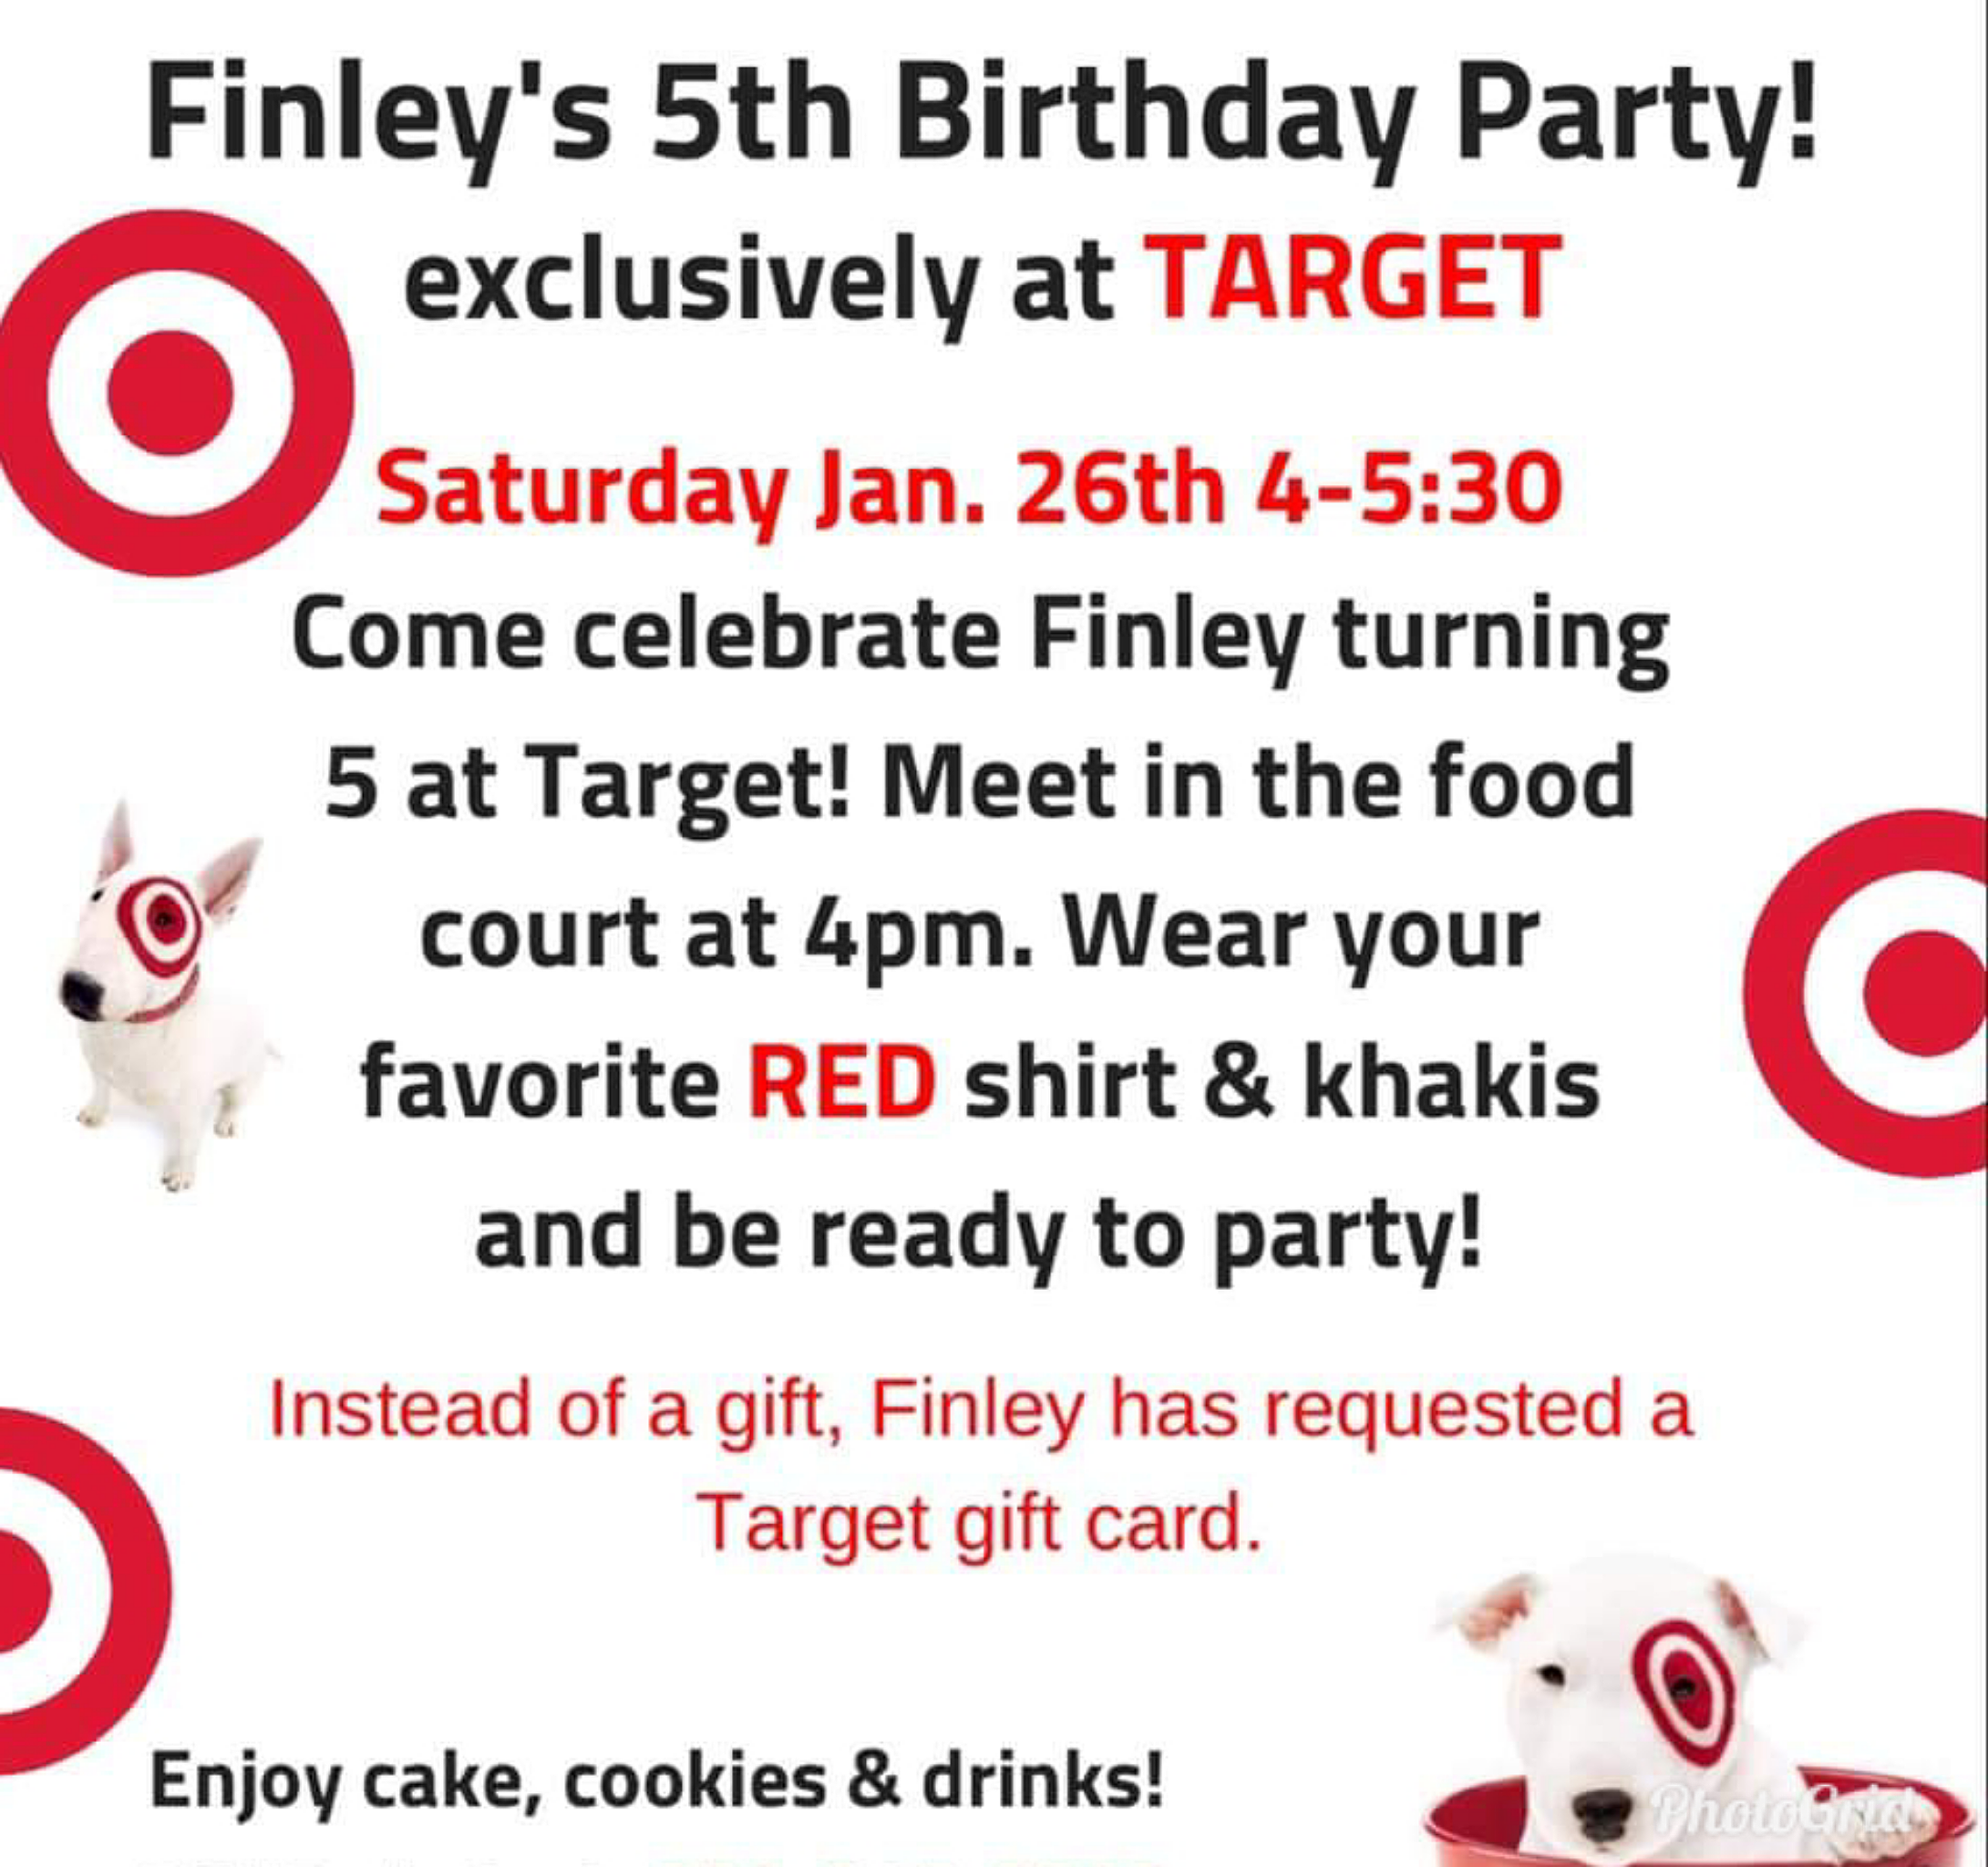 Owensboro Mom Hosts Real Life Target Store Birthday For Daughter